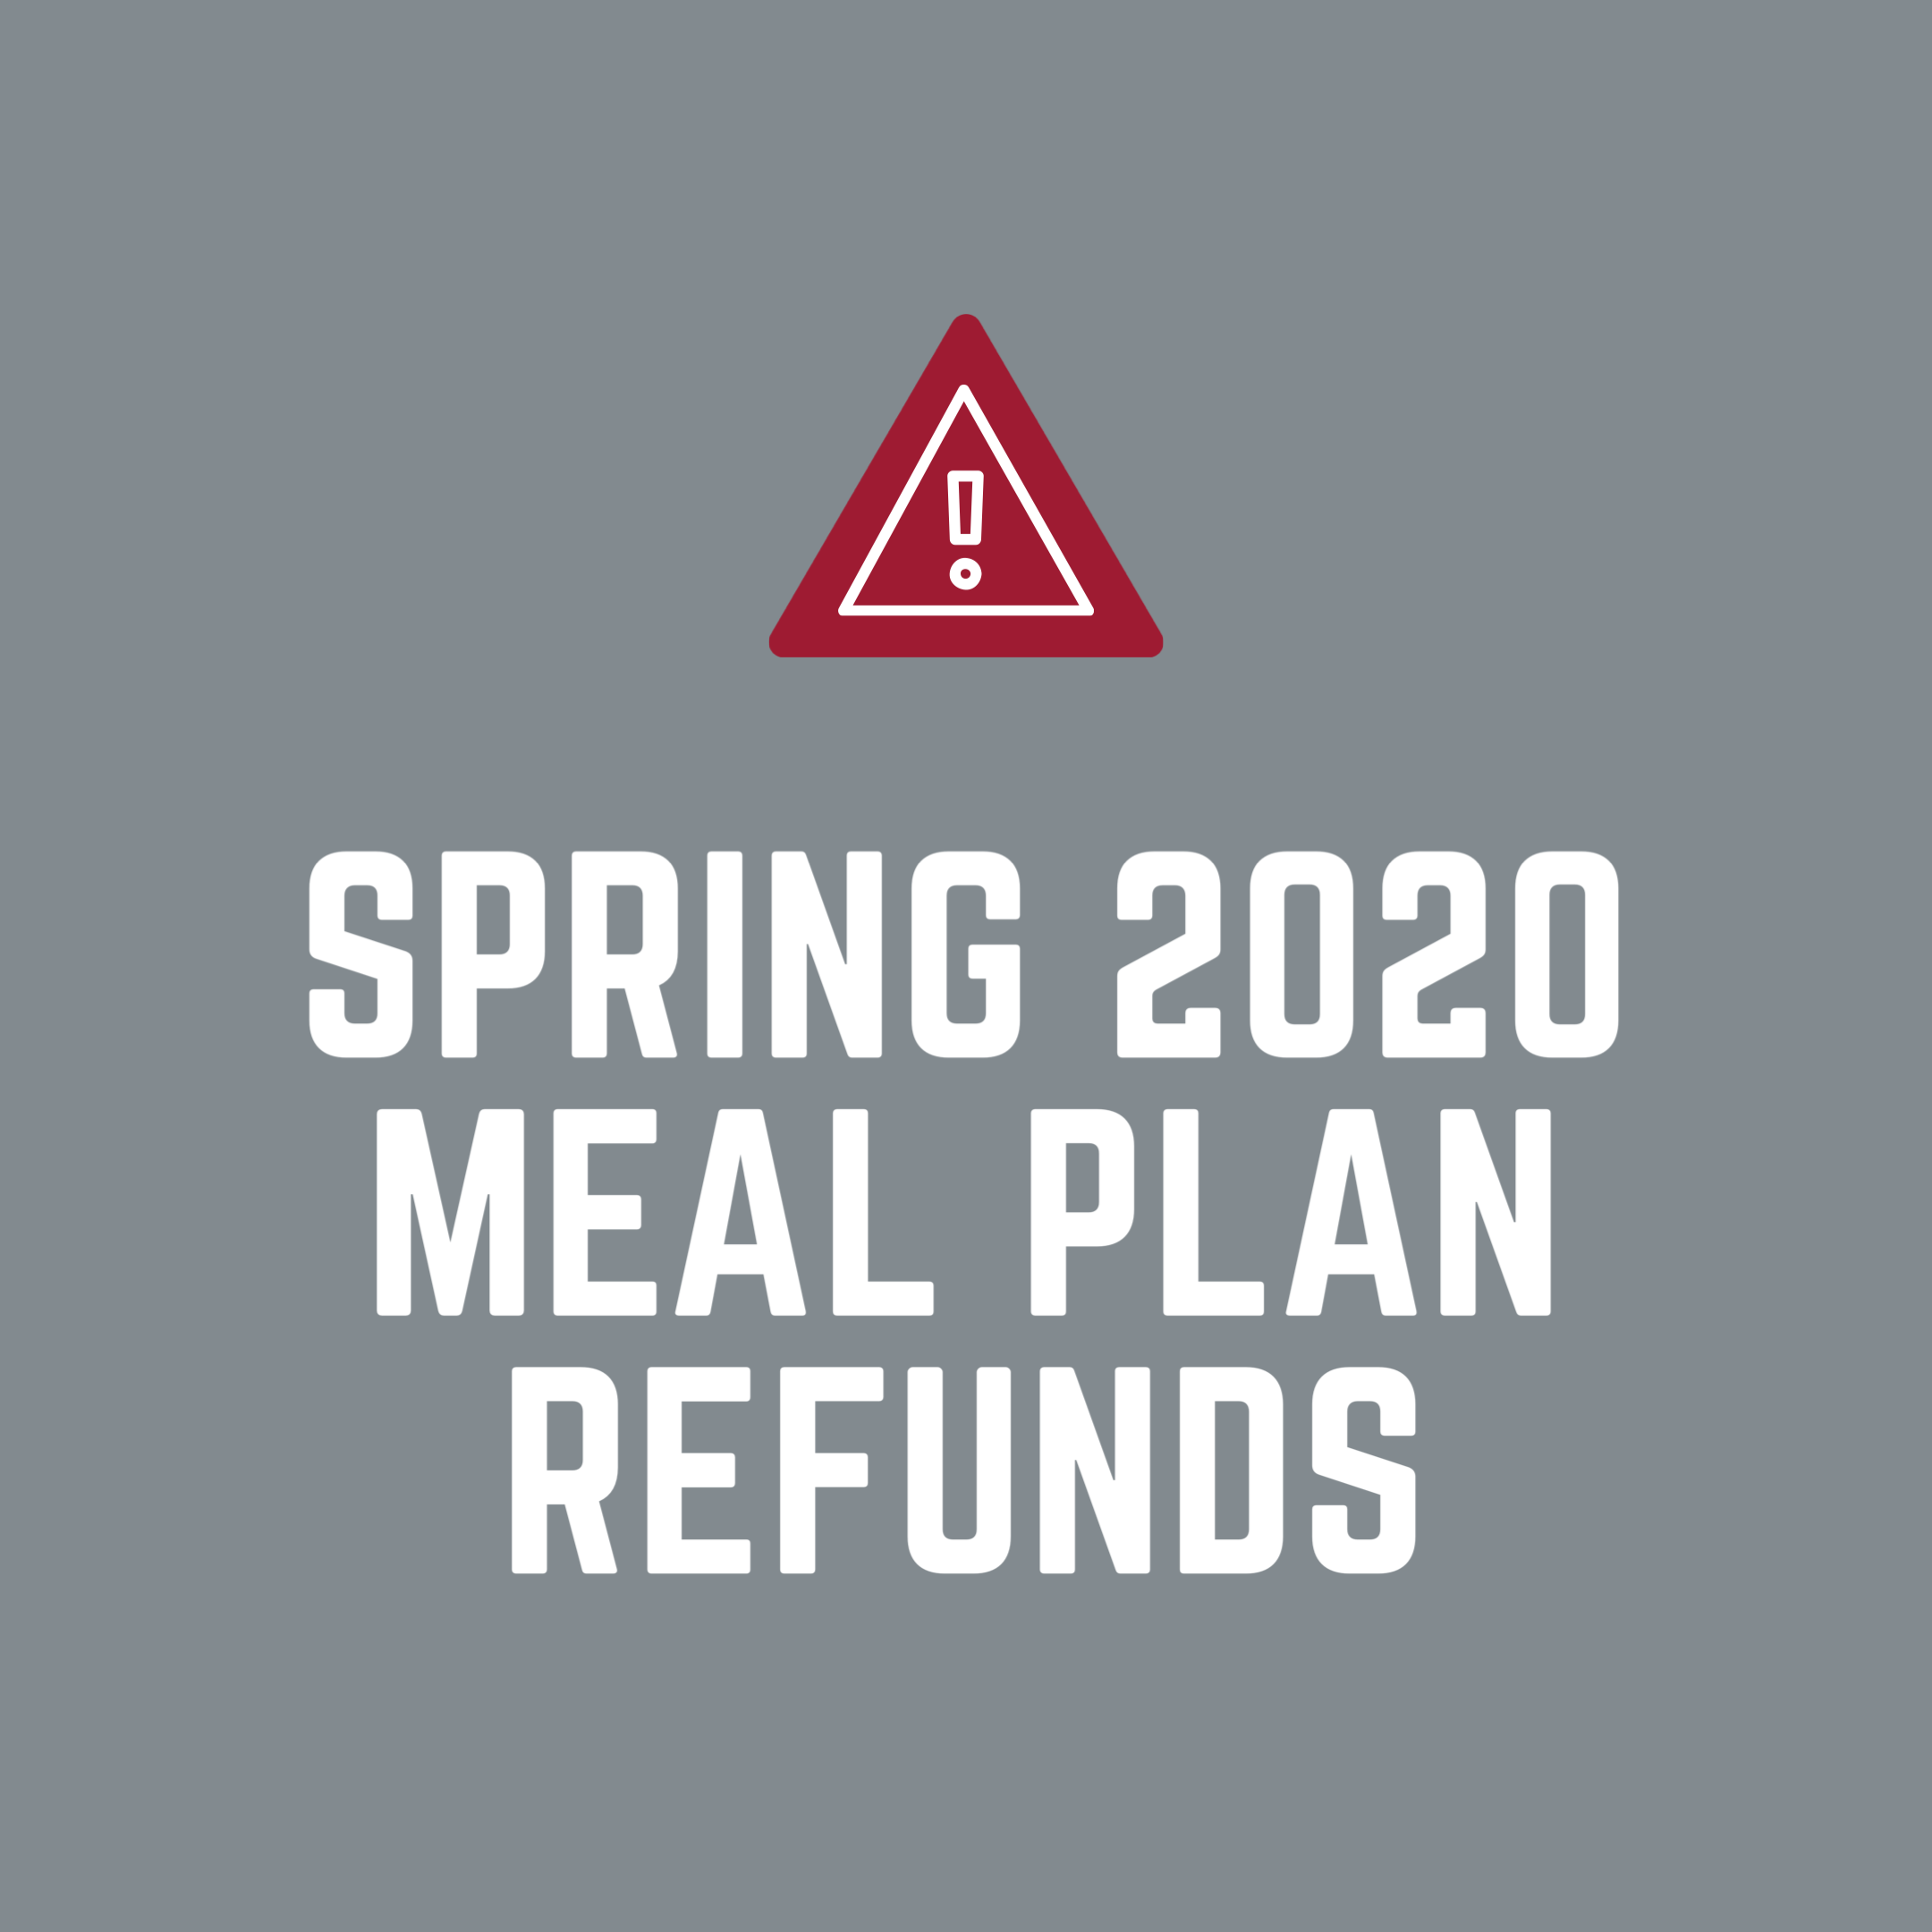 Spring 2020 Meal Plan Refunds